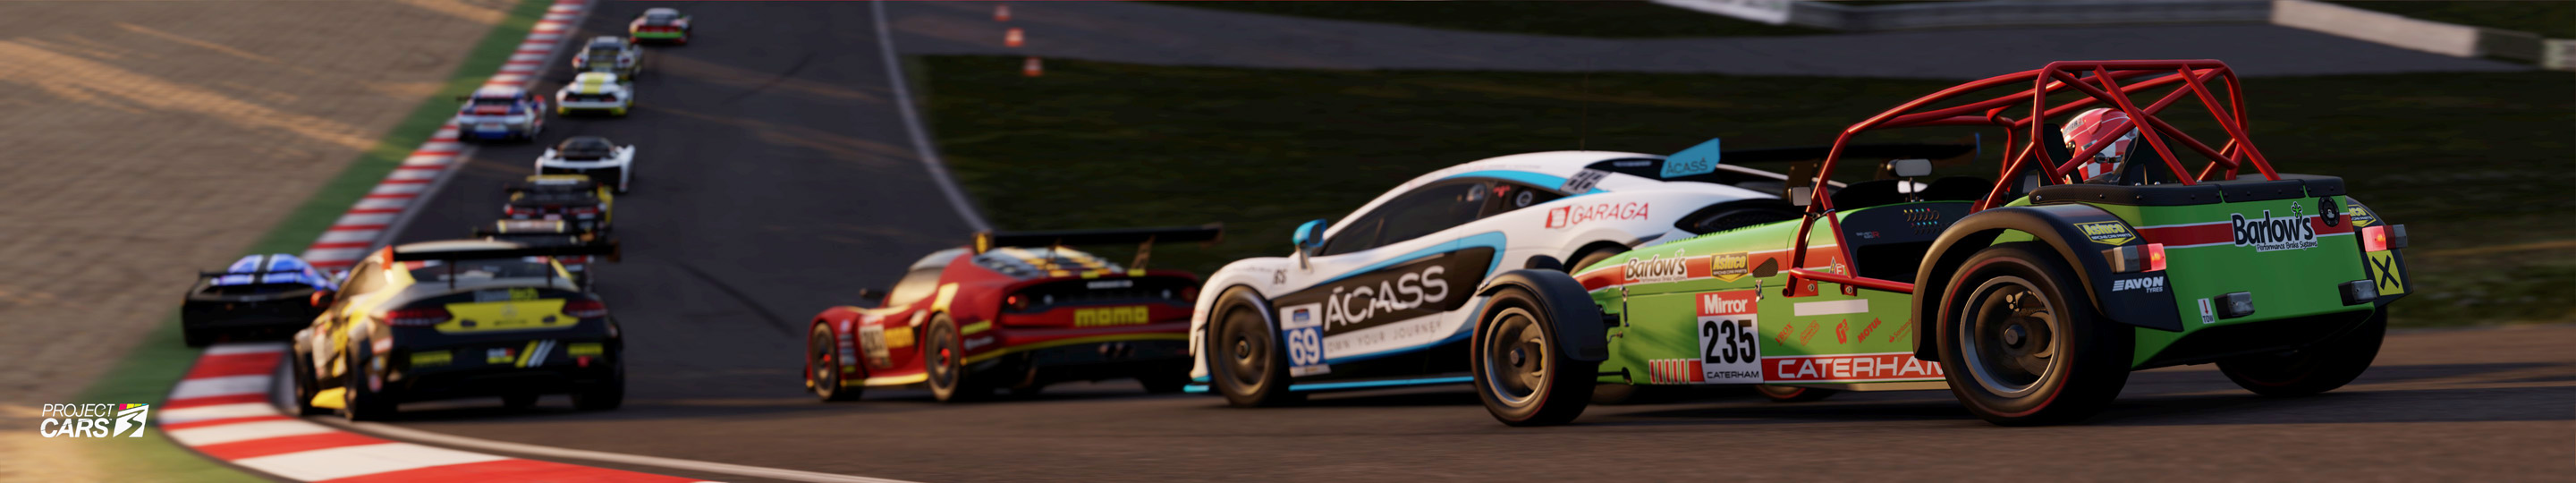 3 PROJECT CARS 3 CATERHAM 620R at BRANDS HATCH copy.jpg